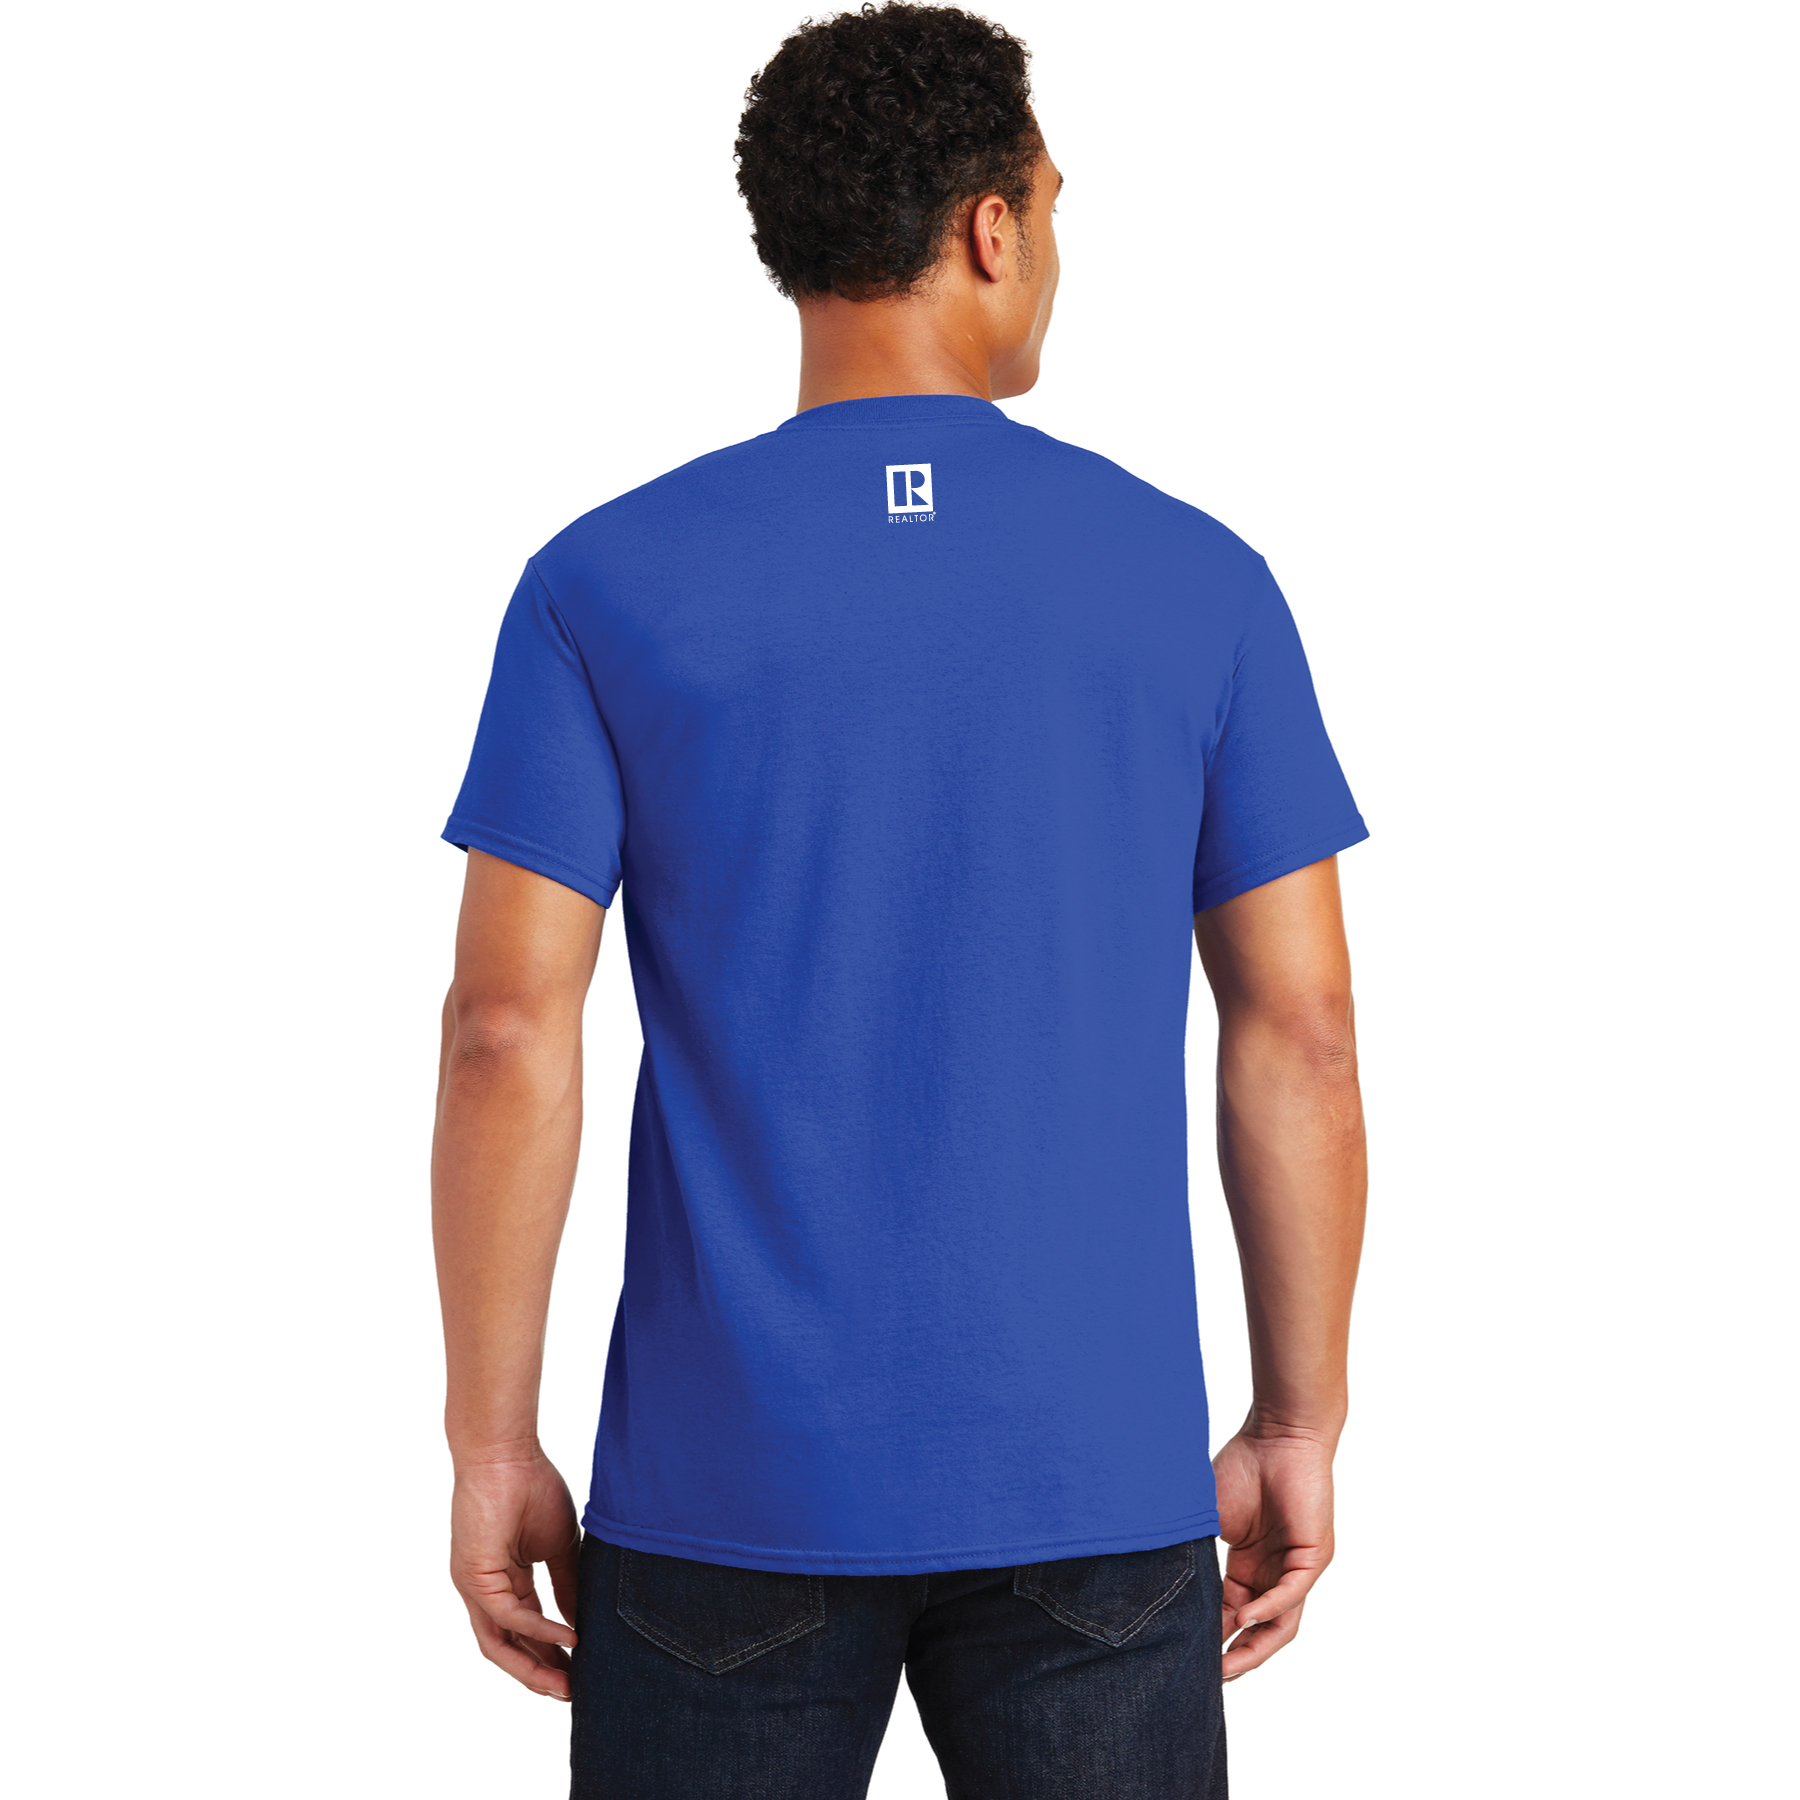 Is Your Agent a REALTOR® Royal Blue Tee Shirt - RCG1146